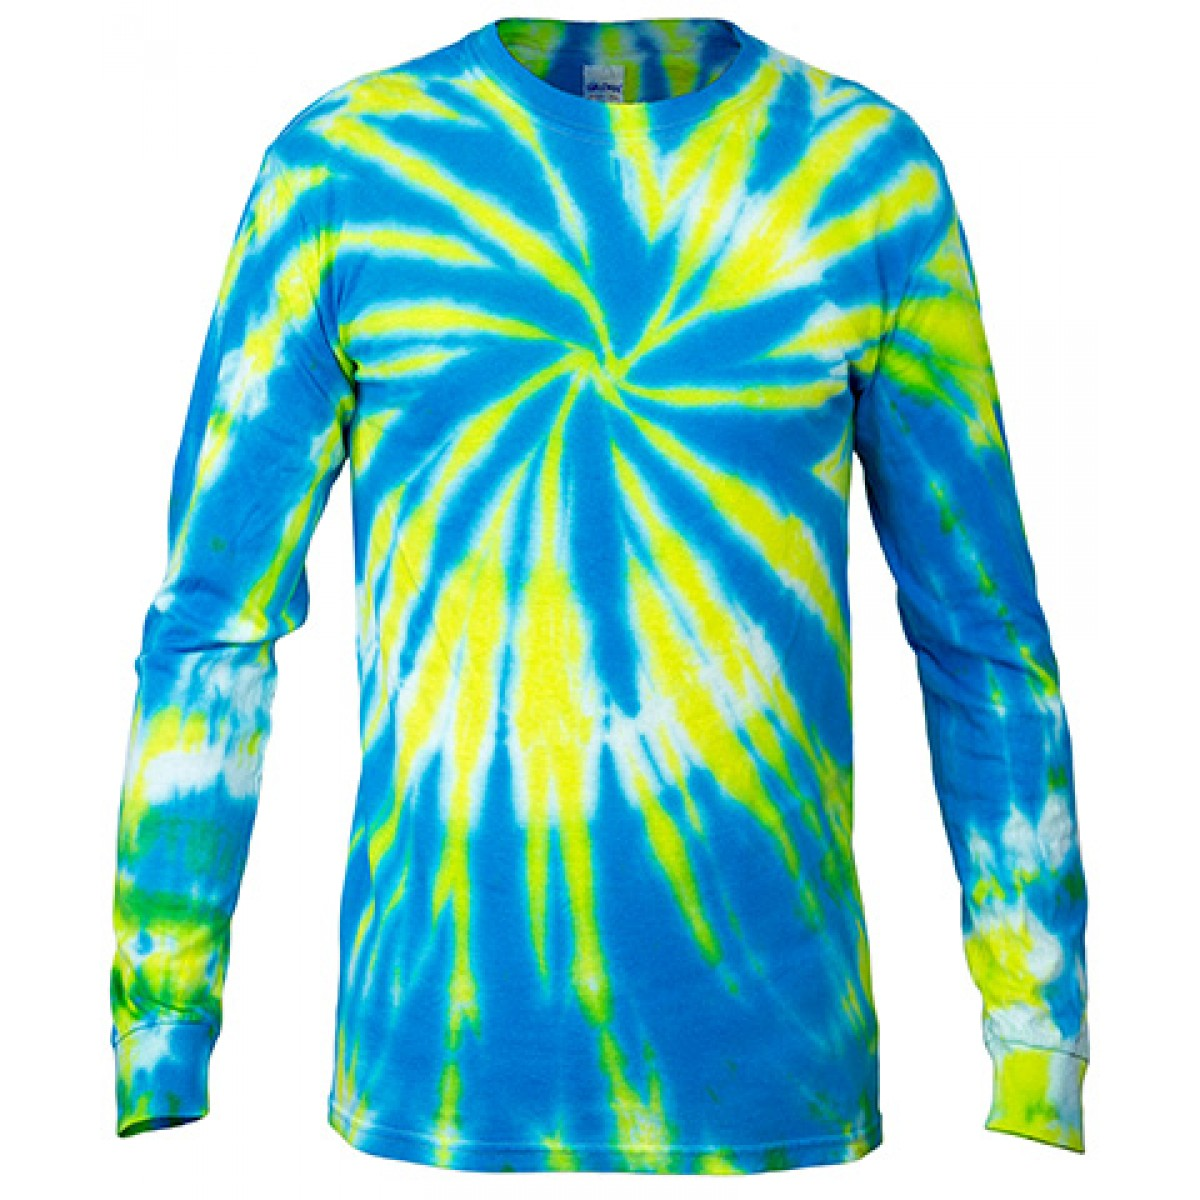 Multi Color Tie-Dye Long Sleeve Shirt -Blue-XL